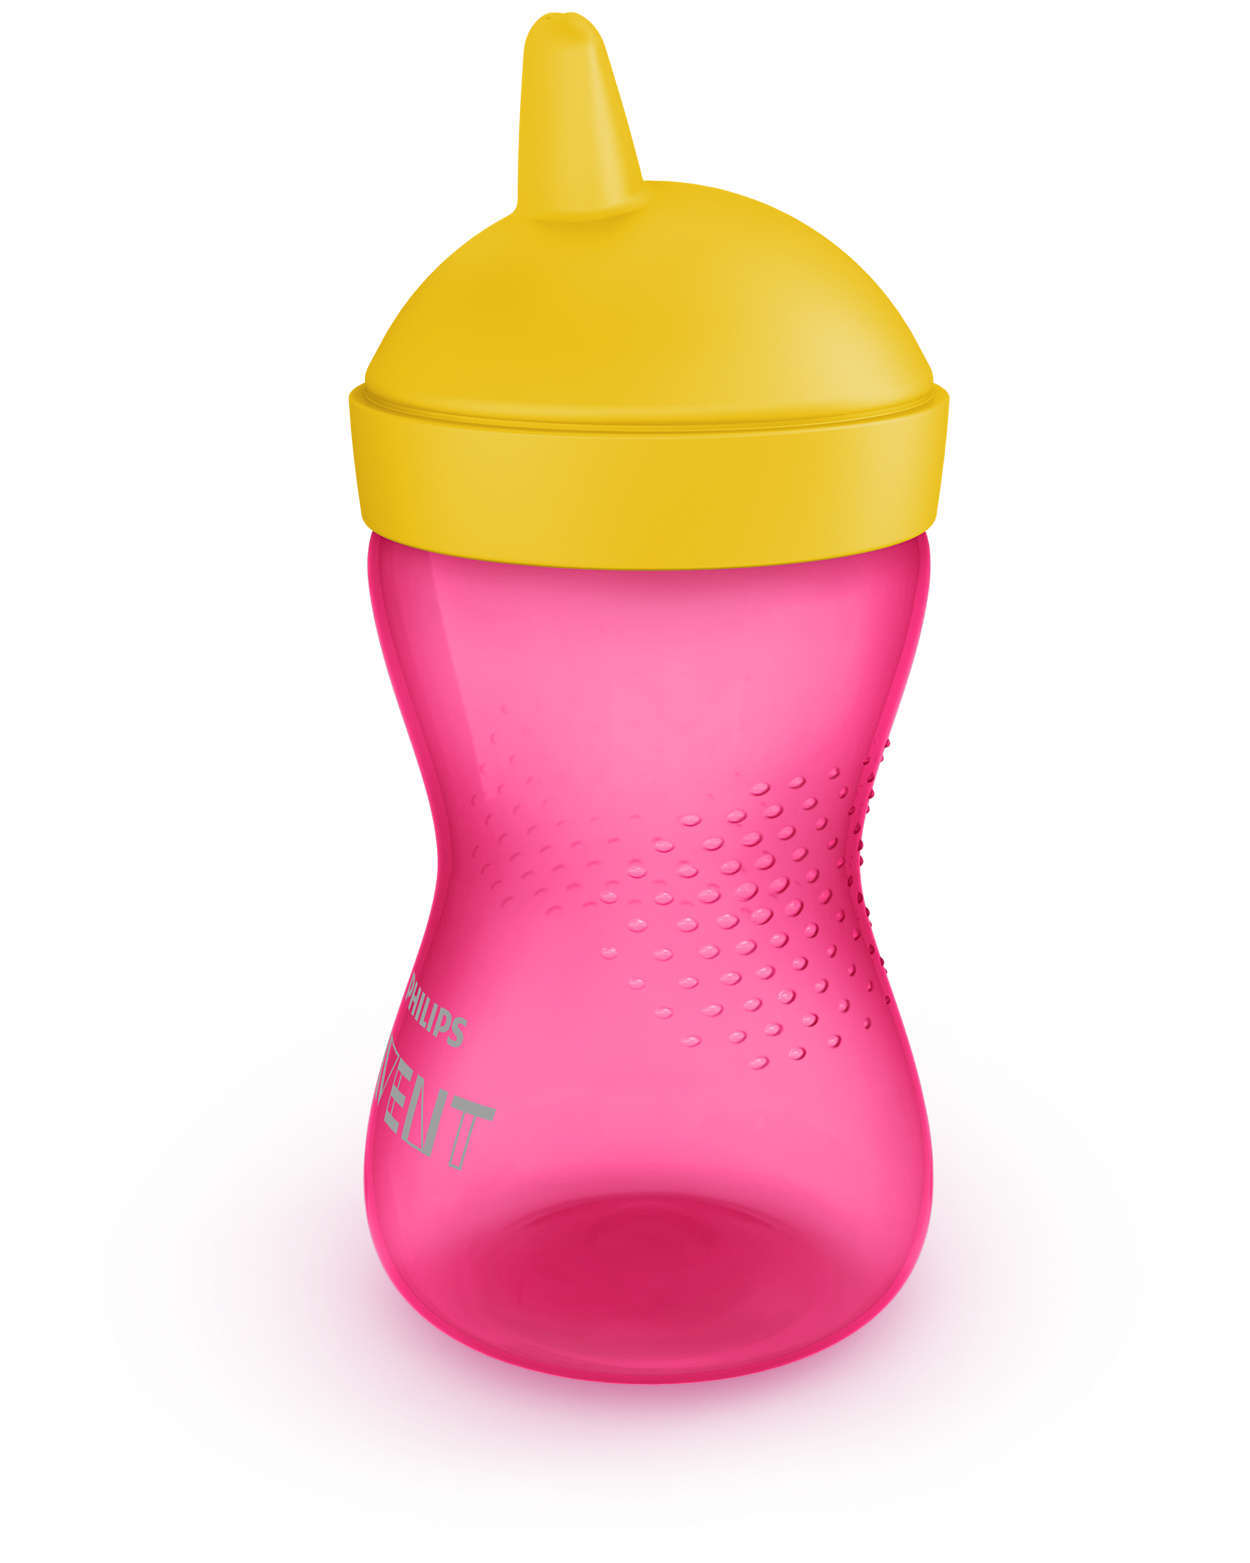 Avent Grippy Cup Hard - 300ml (Pink) image